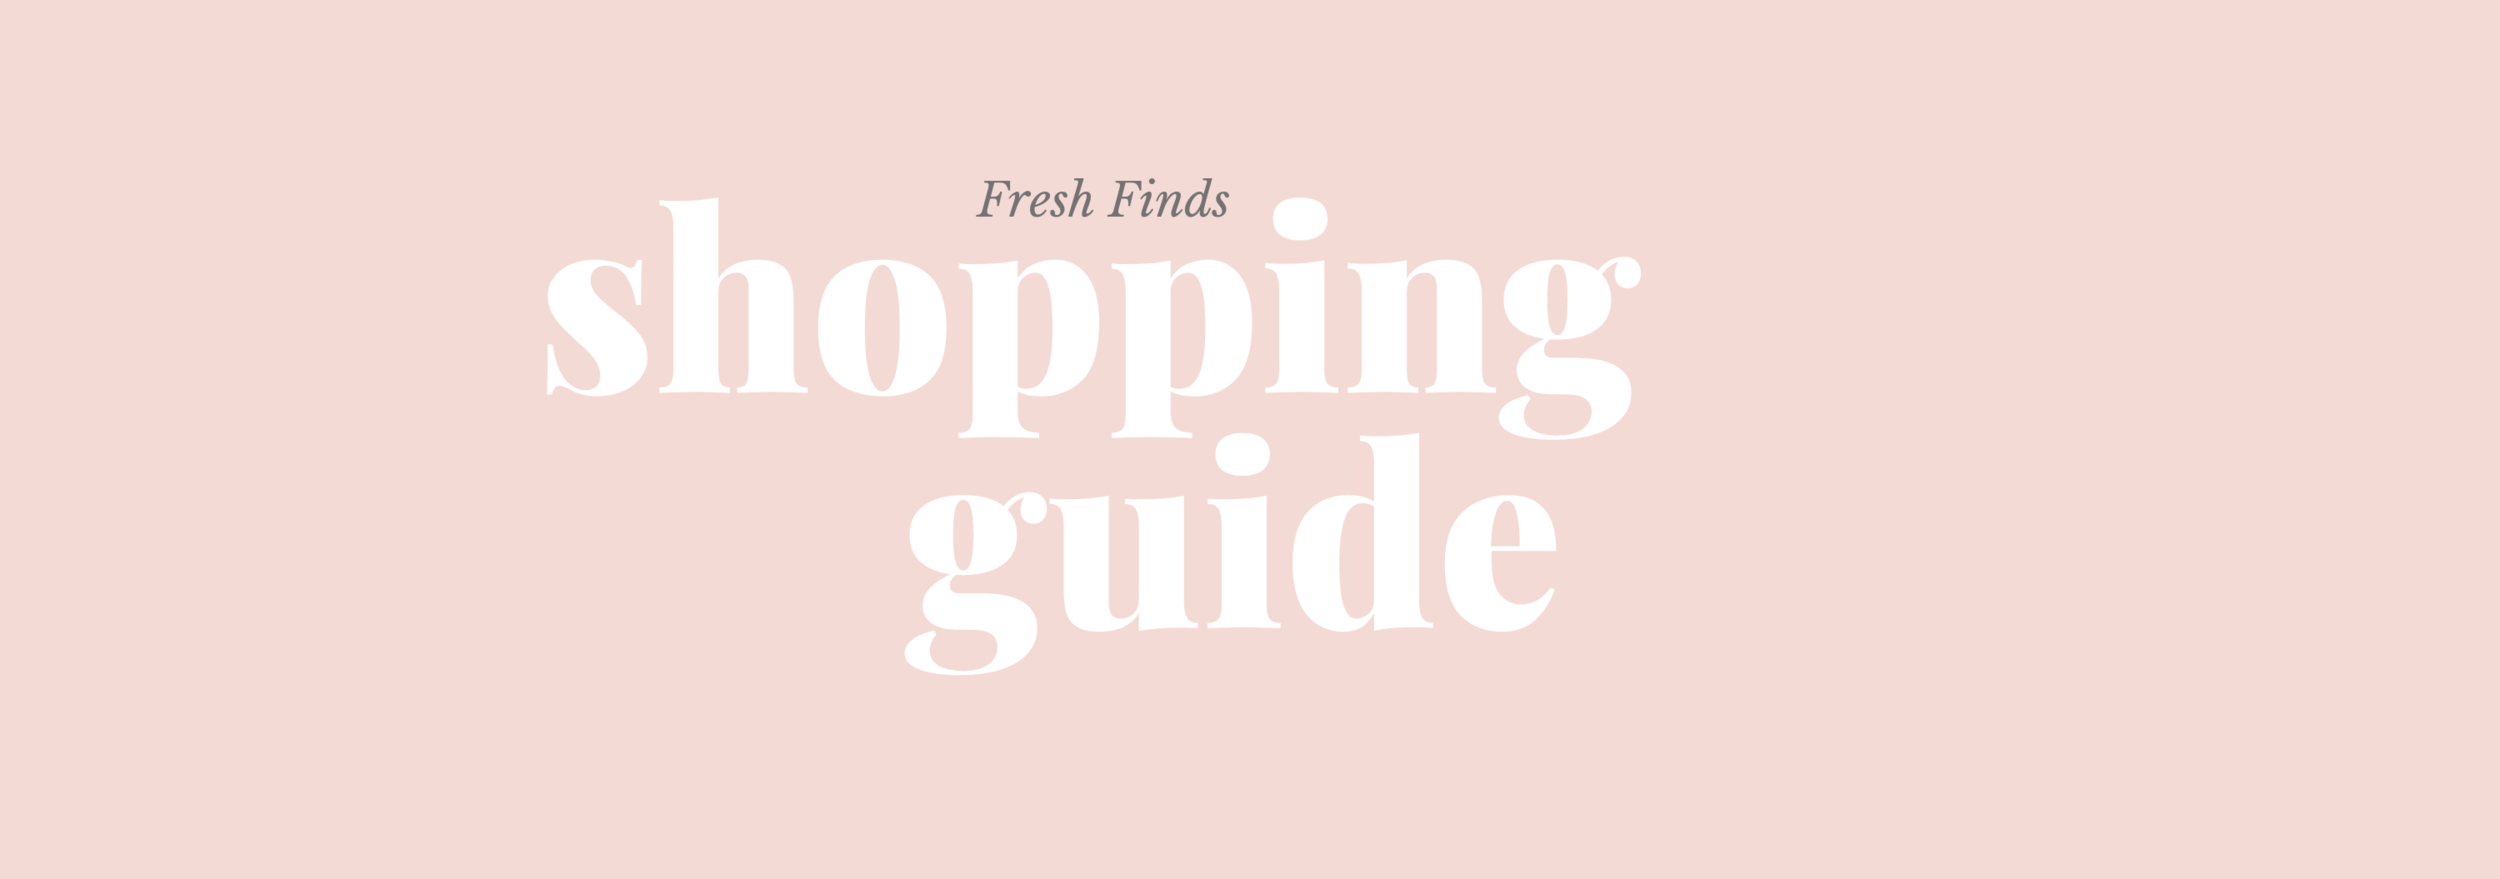 Gennifer Rose_Fresh Finds Shopping Guide.png